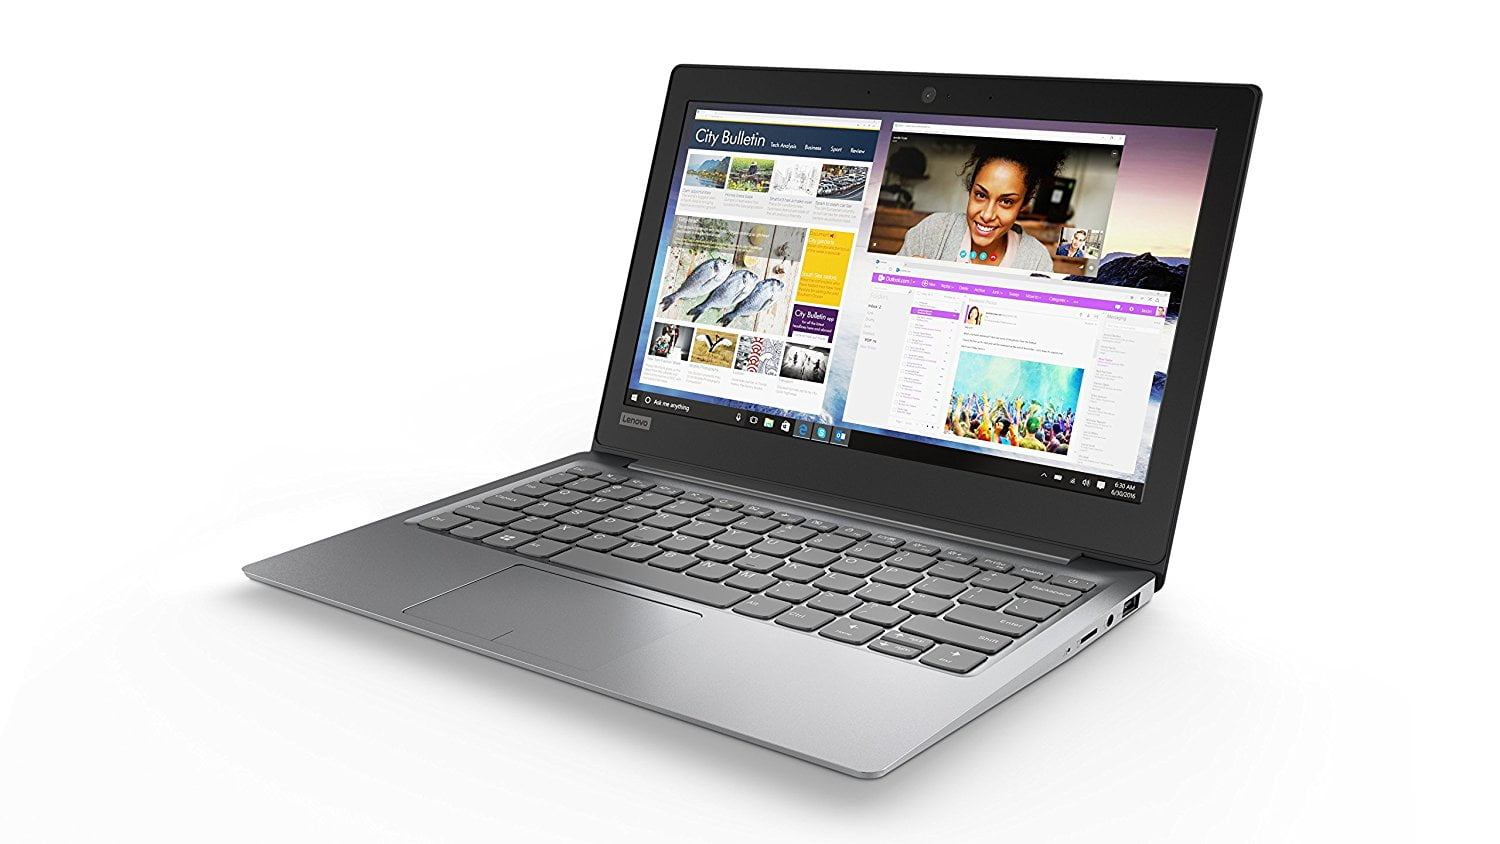 lenovo ideapad 120S-11IAP review